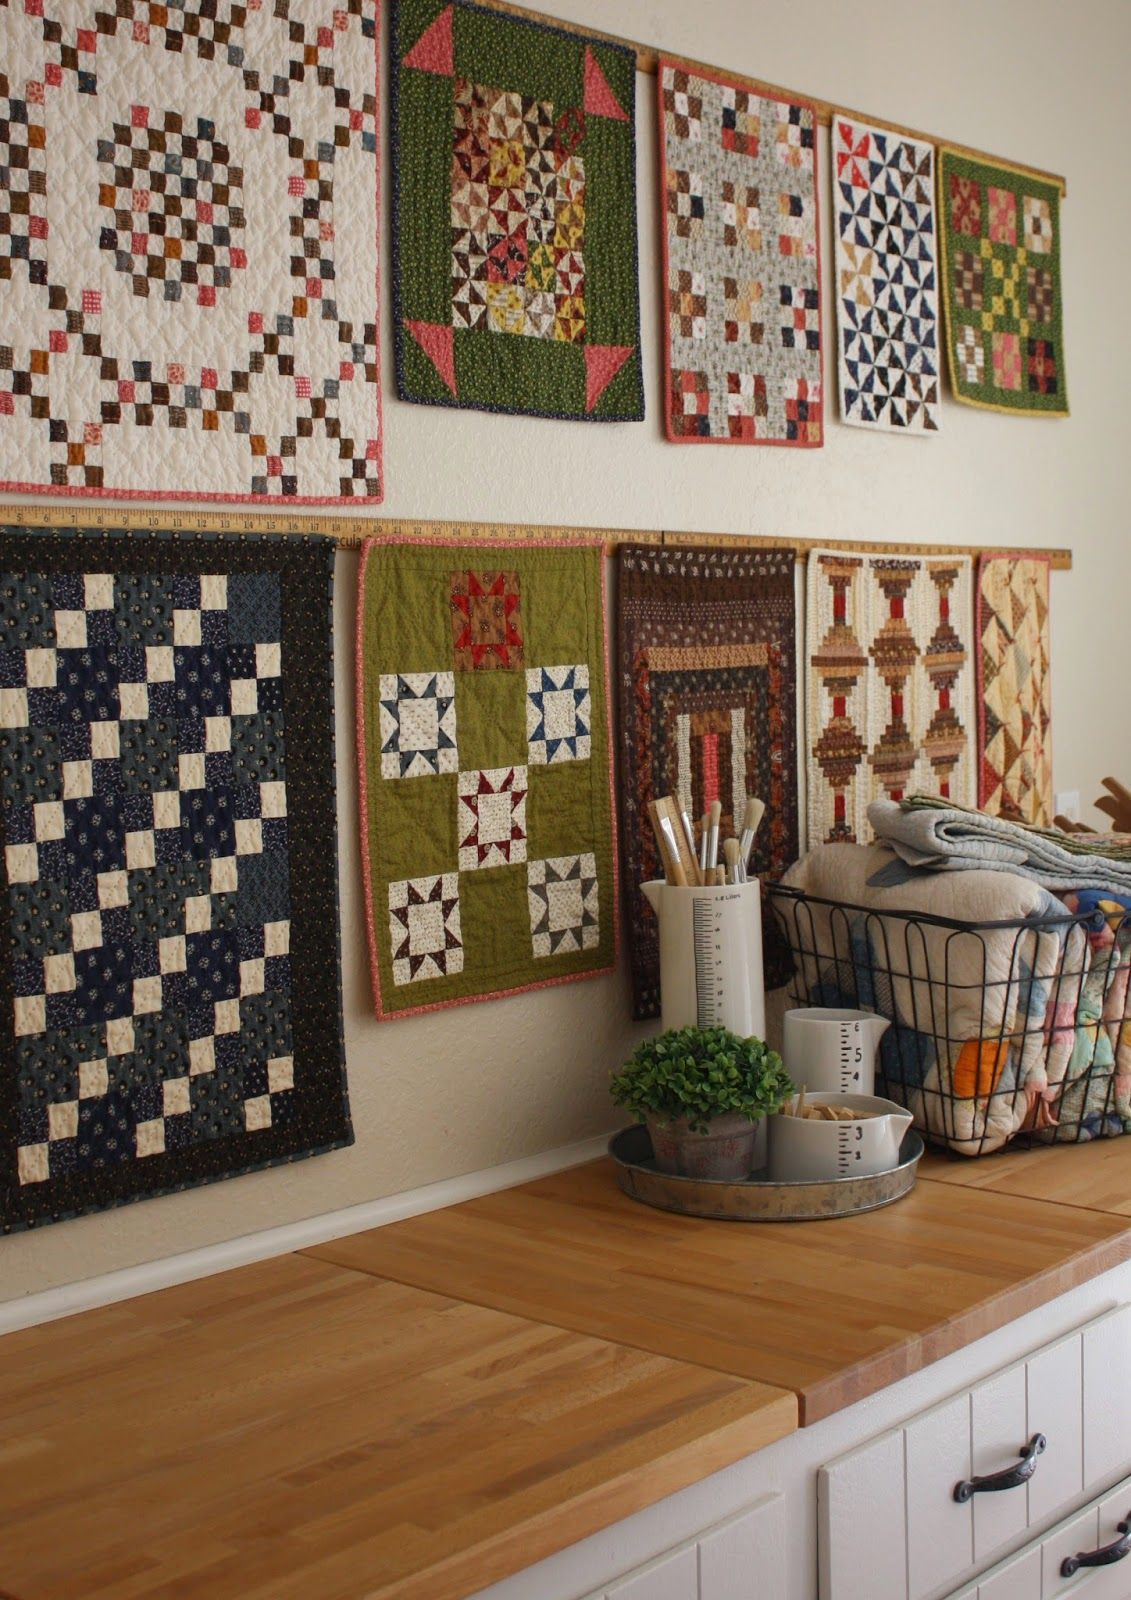 Living With Little Quilts Love the ruler used to hang quilts